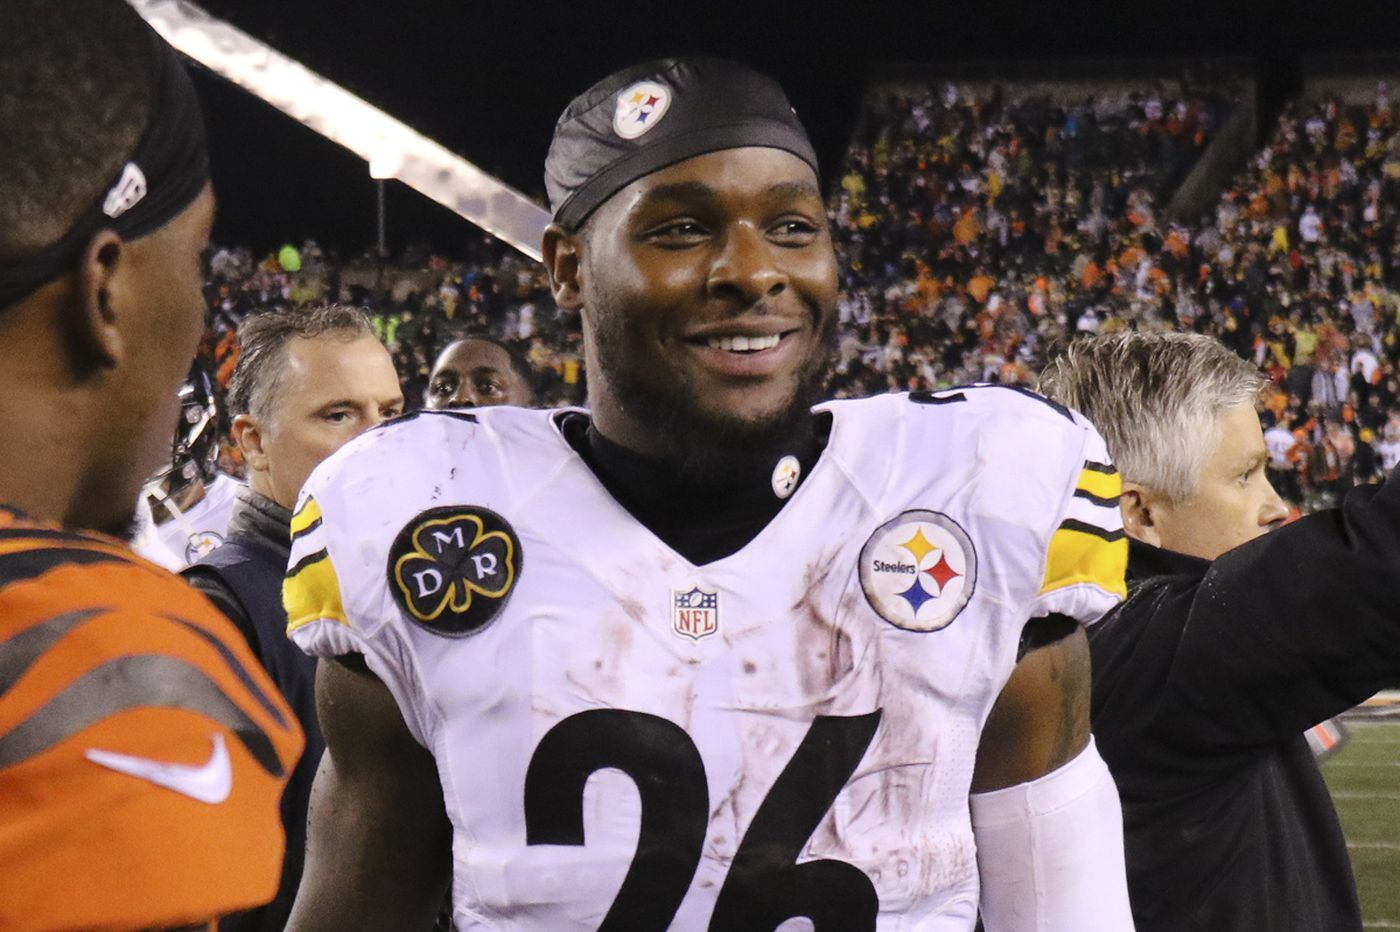 Le'Veon Bell expects Eagles to be interested in him in free agency